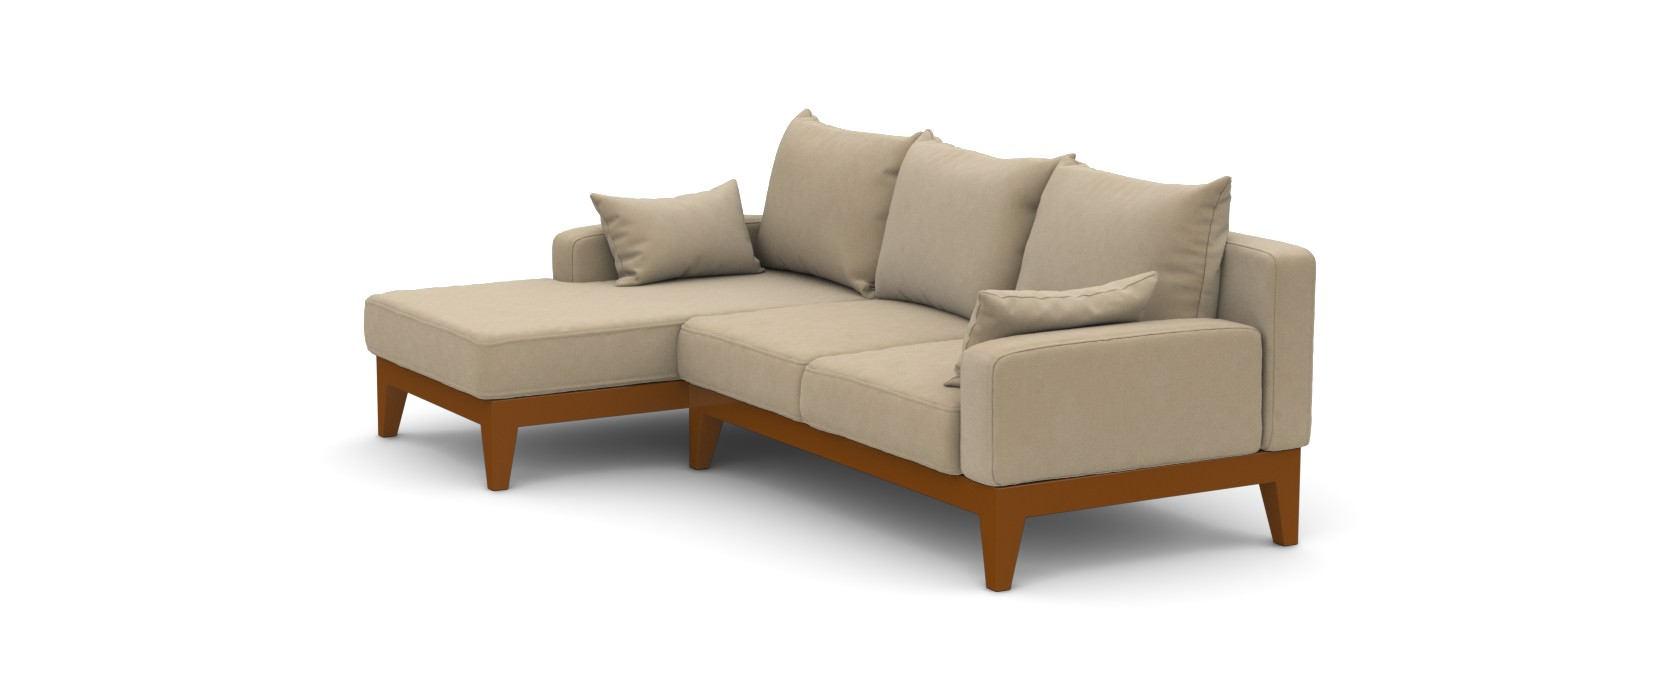 Sofa mit Chaiselongue Lobby